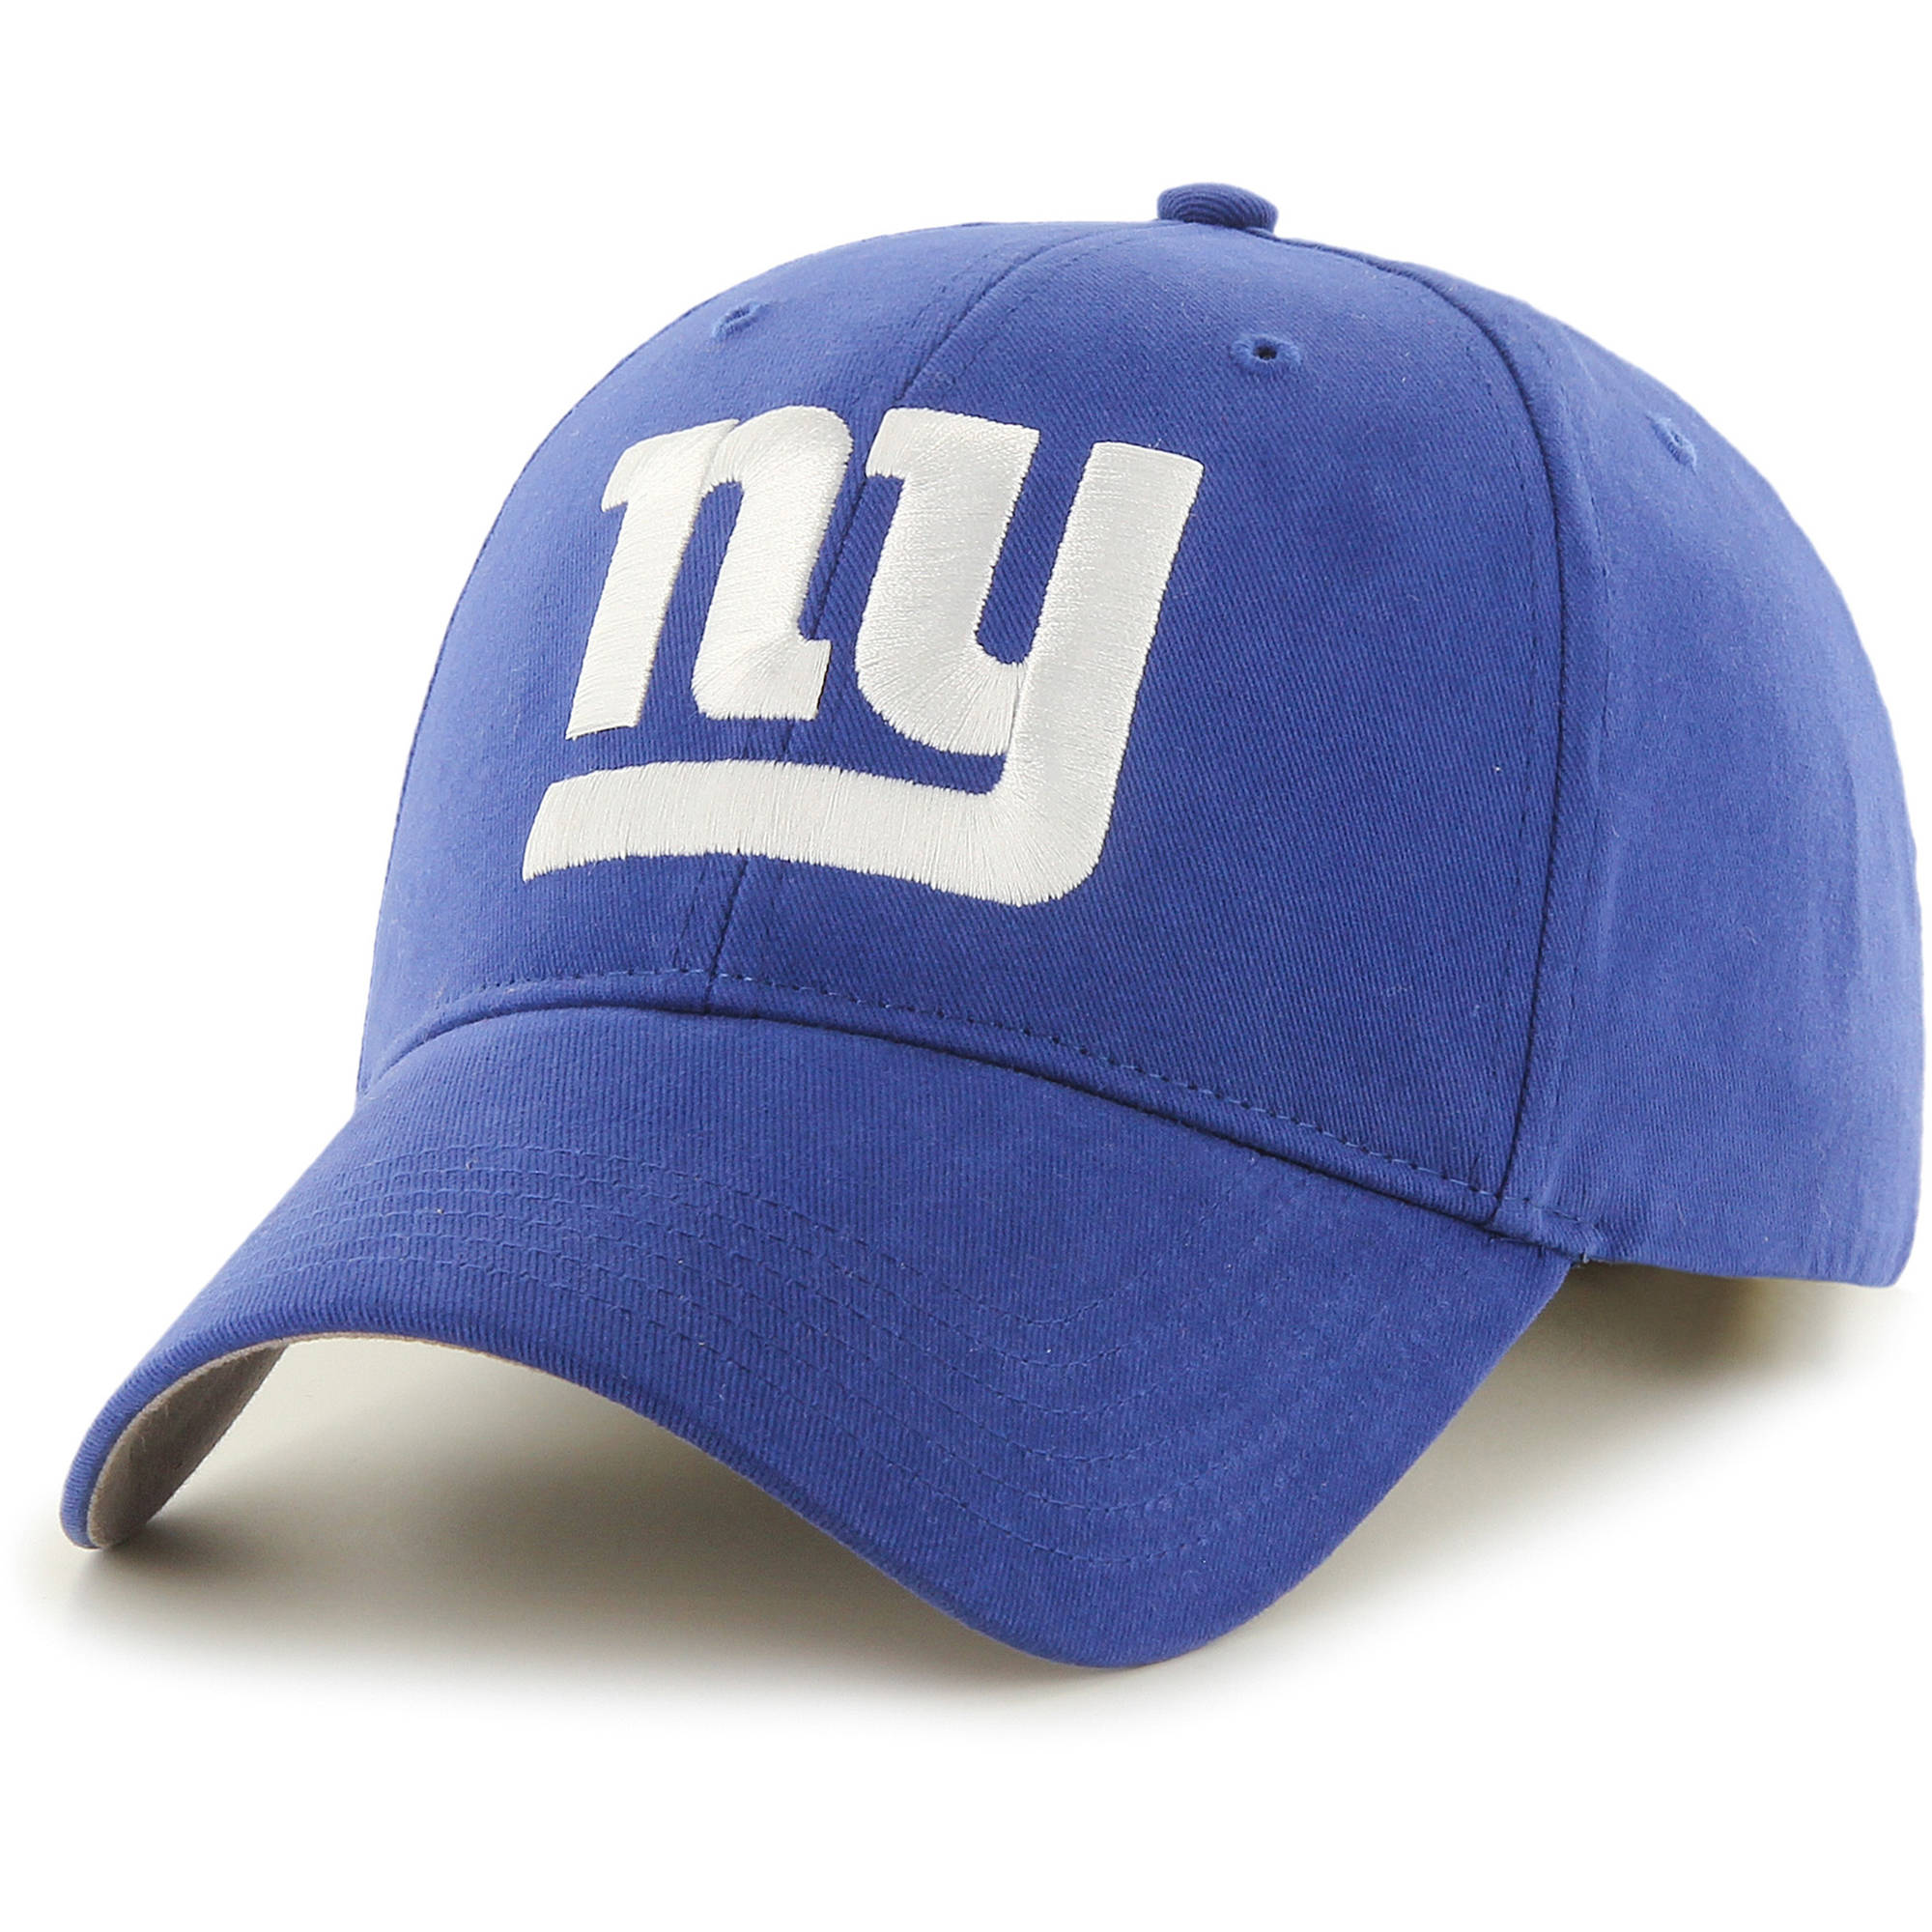 357ee81f7 New York Giants Team Shop - Walmart.com